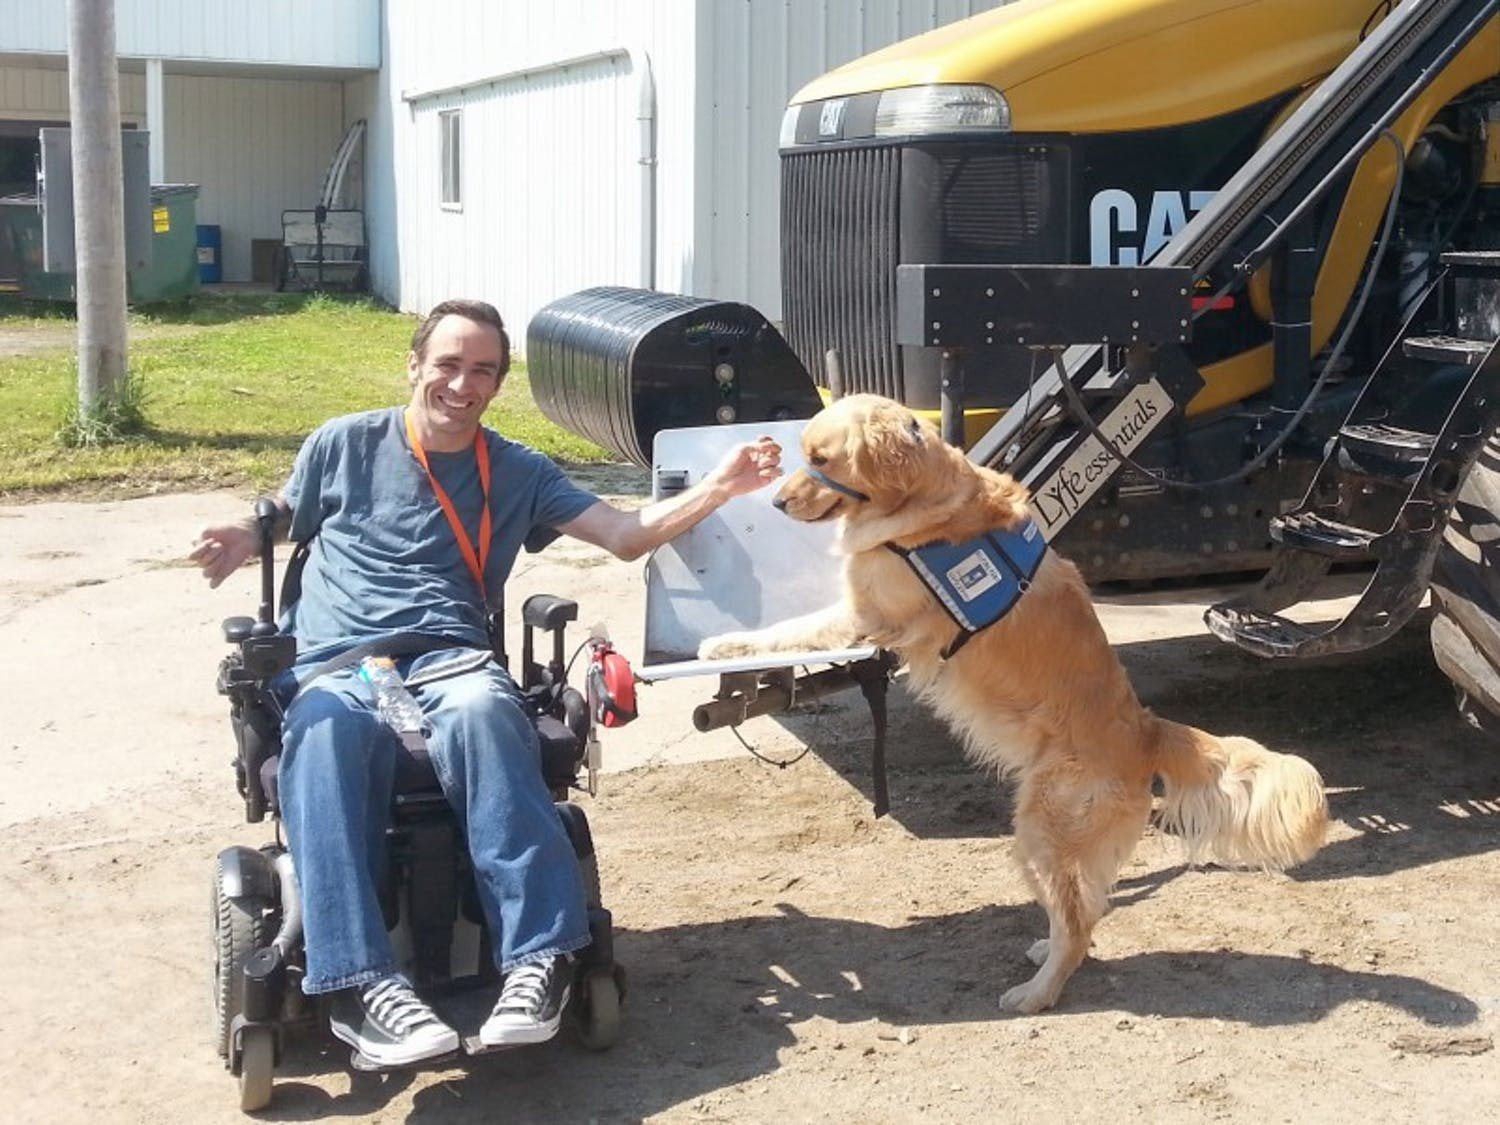 AgrAbility of Wisconsin, formed through a partnership between the UW Extensionand Easter Seals of Wisconsin, provides assistance to an estimated 38,740 Wisconsin farmers with limitations or disabilities — including chronic illnesses, agriculture or non-agriculture-related injuries, and mental health issues.